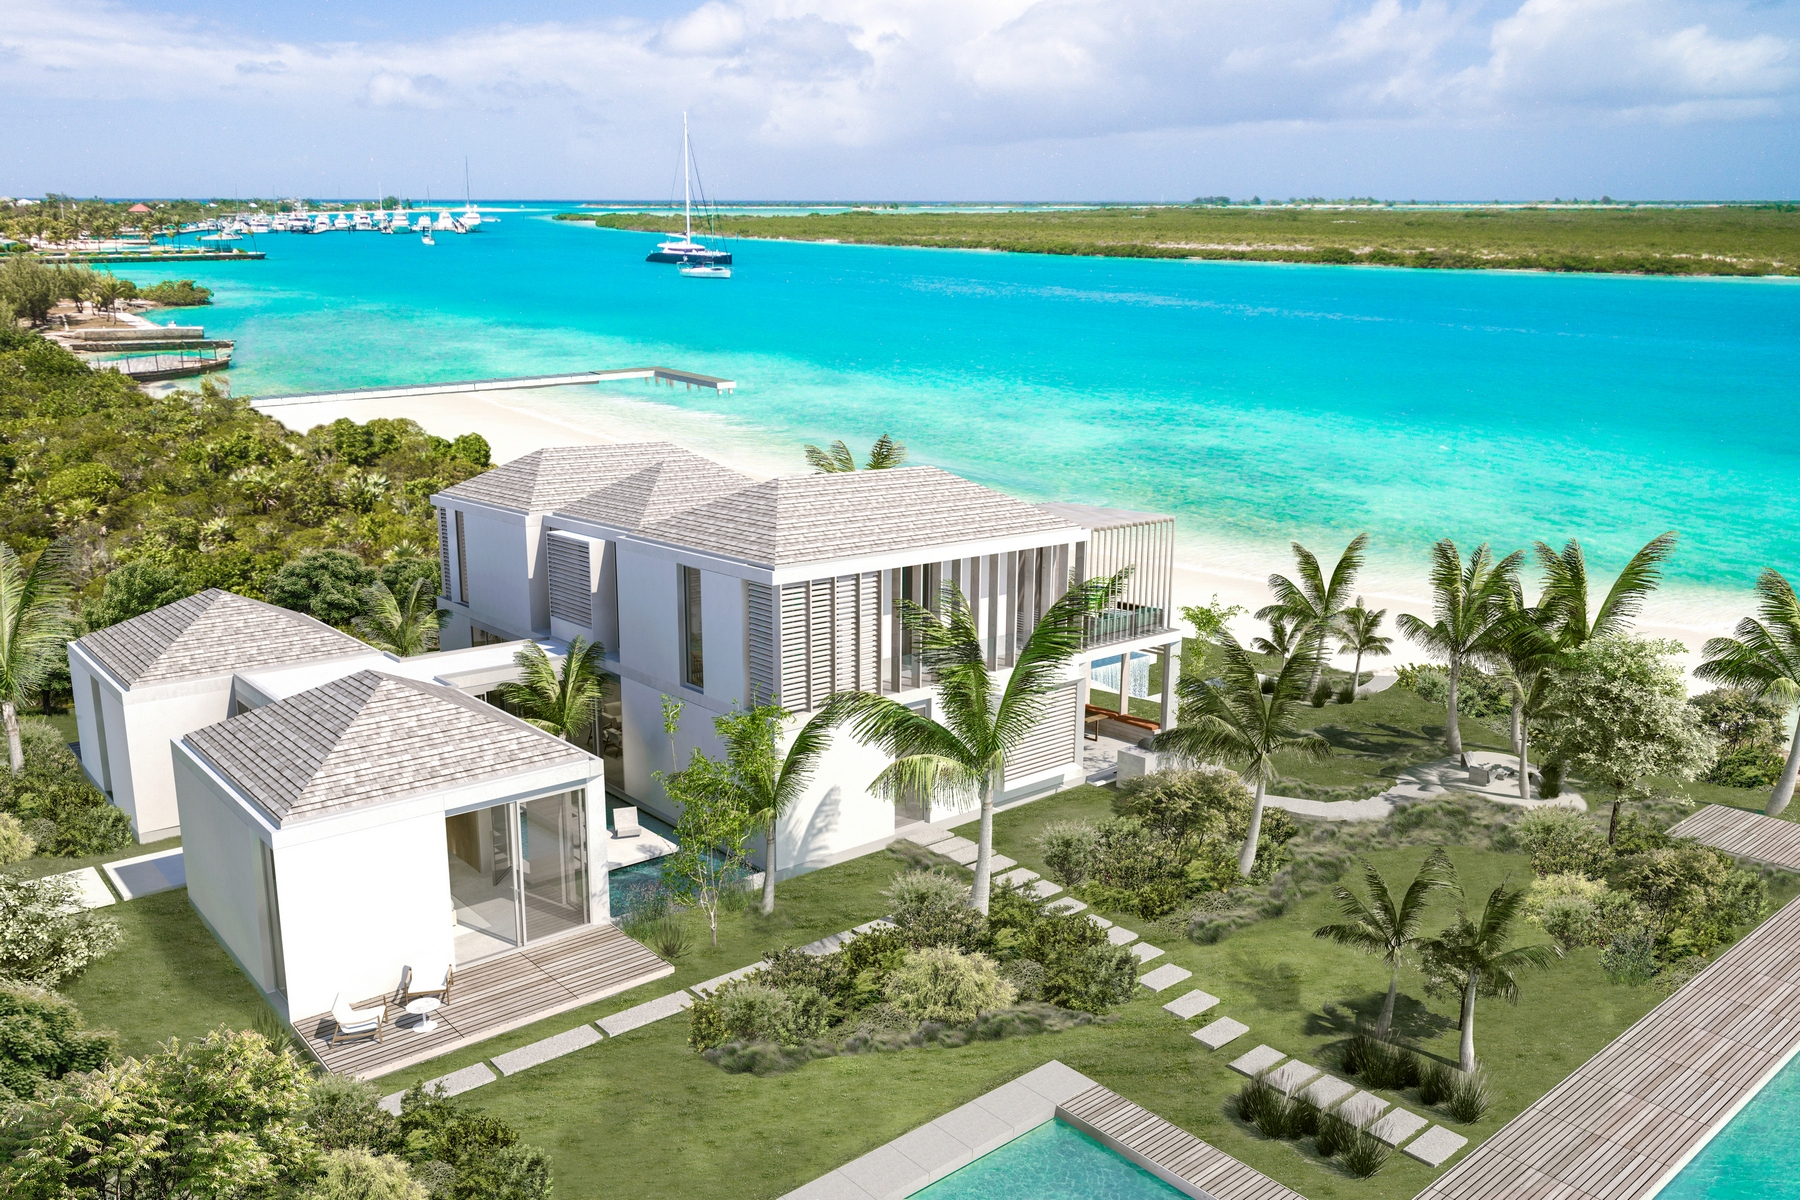 Single Family Home for Sale at Pavilion House - Beachfront Lot 1 Leeward, Providenciales, Turks And Caicos Islands